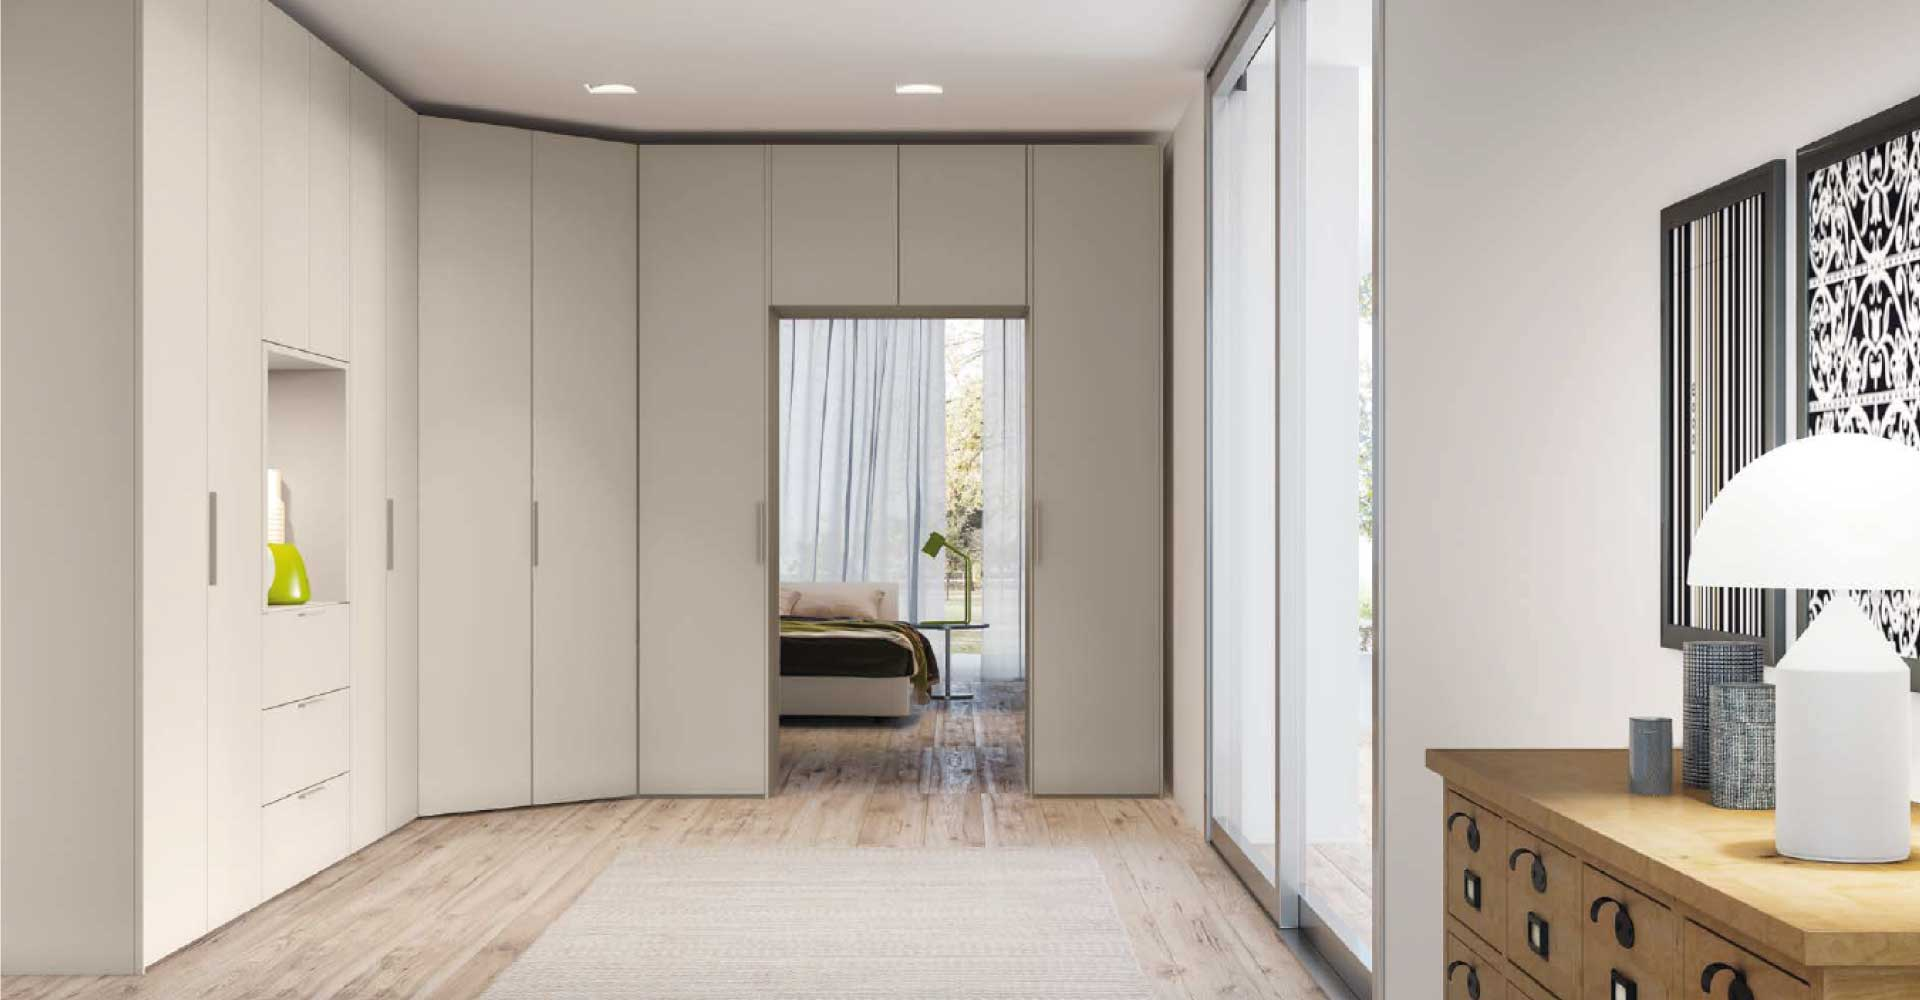 HOME-DESIGN-PORTES-BATTANTES_2